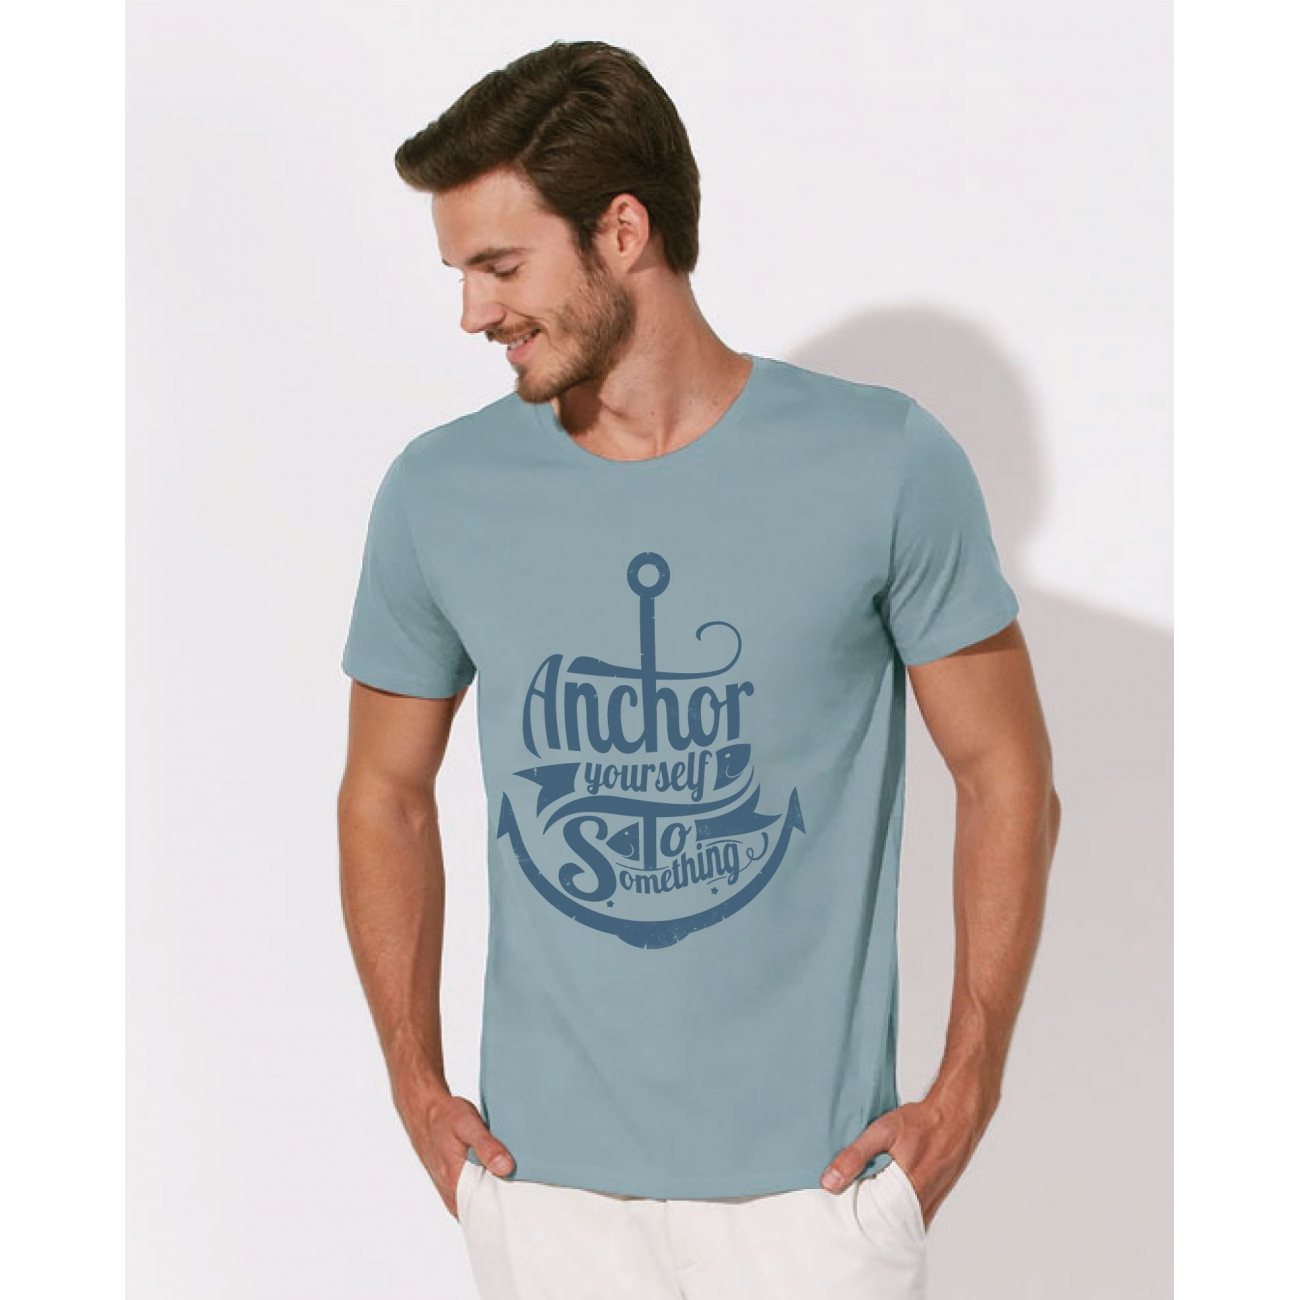 https://tee-shirt-bio.com/3221-thickbox_default/tee-shirt-bleu-clair-homme-100-coton-bio-doux-equitable-imprime-ancre-tattoo.jpg